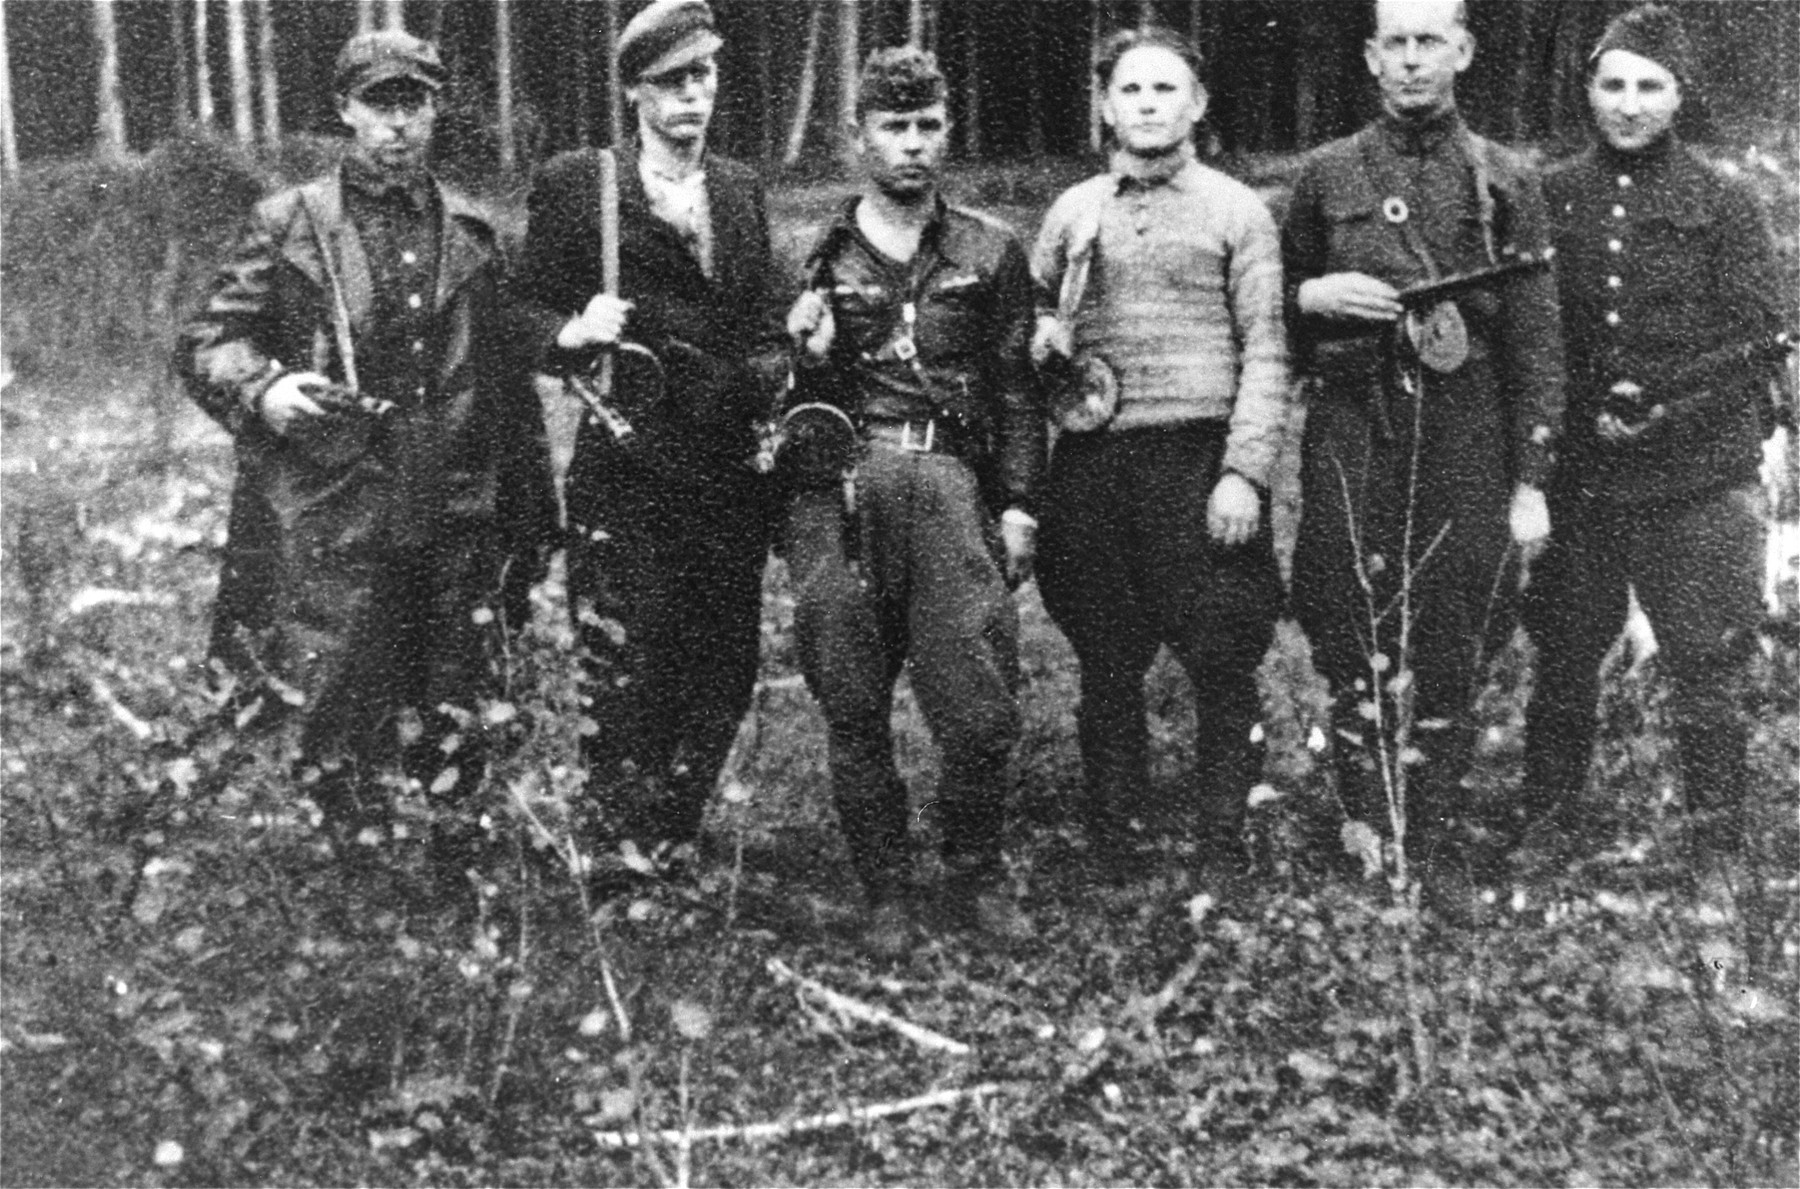 A Jewish partisan group in the Rudninkai forest.    On the far right is Max (Motl) Wischkin.  Moshe Abramovytz (b. 1917 in Kosvo Polska) is fourth from the right.